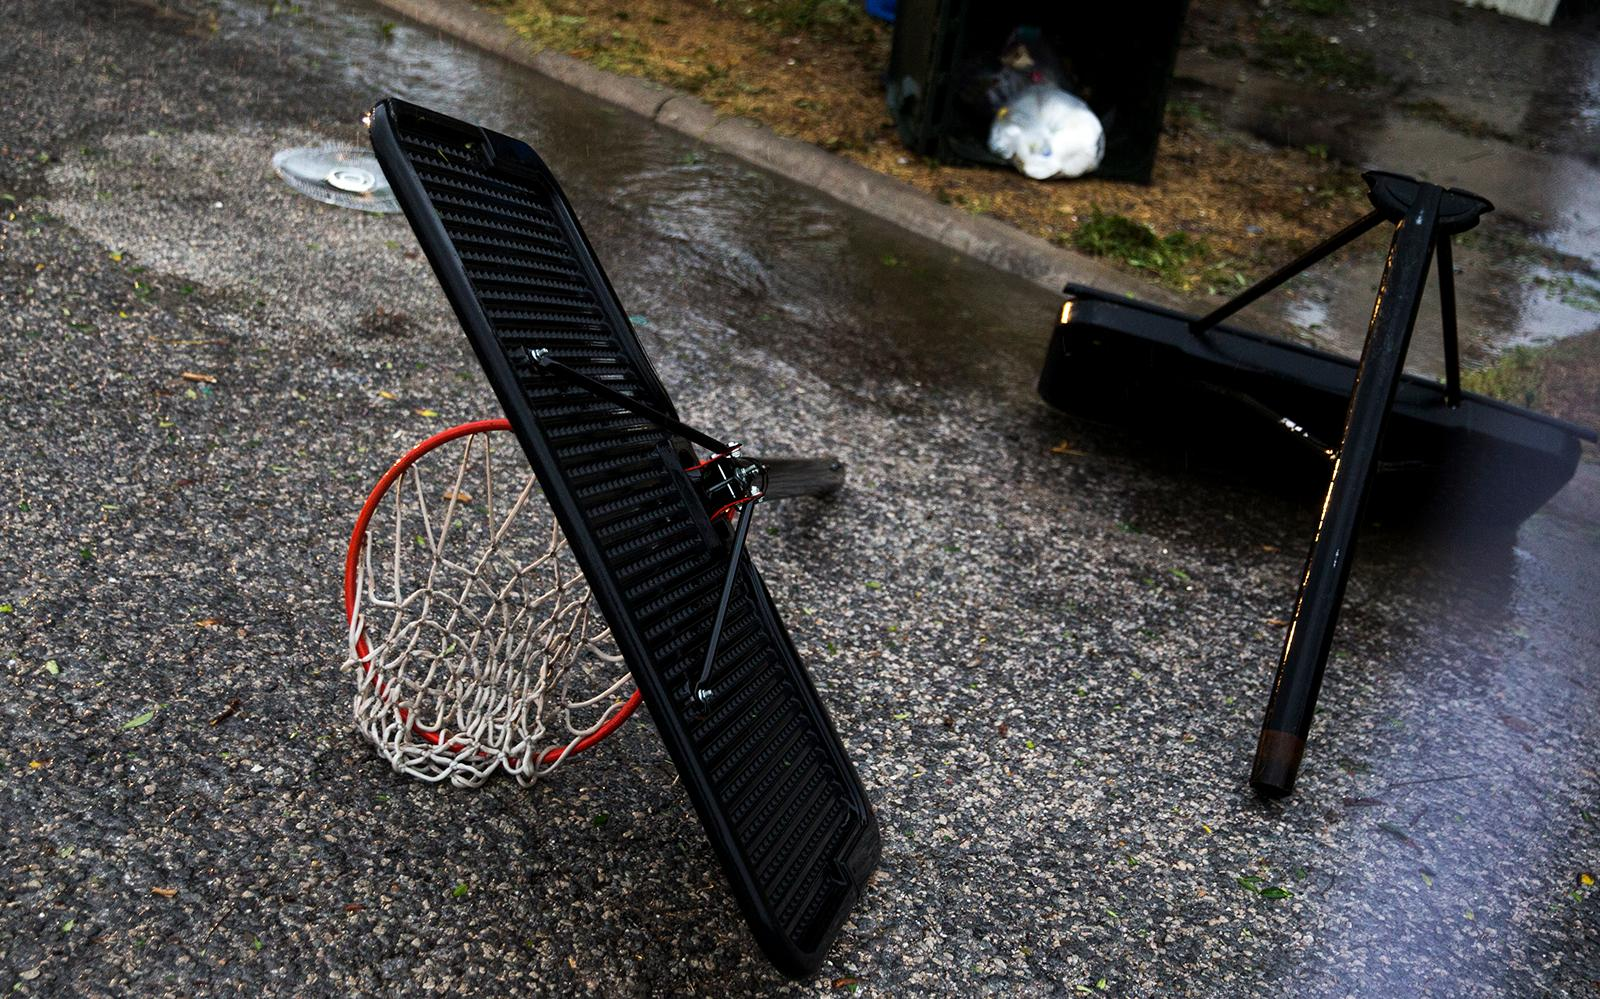 A basketball hoop lays in pieces as Hurricane Harvey makes landfall in Corpus Christi, Texas, on Friday, Aug. 25, 2017. Hurricane Harvey smashed into Texas late Friday, lashing a wide swath of the Gulf Coast with strong winds and torrential rain from the fiercest hurricane to hit the U.S. in more than a decade.  (Nick Wagner/Austin American-Statesman via AP)